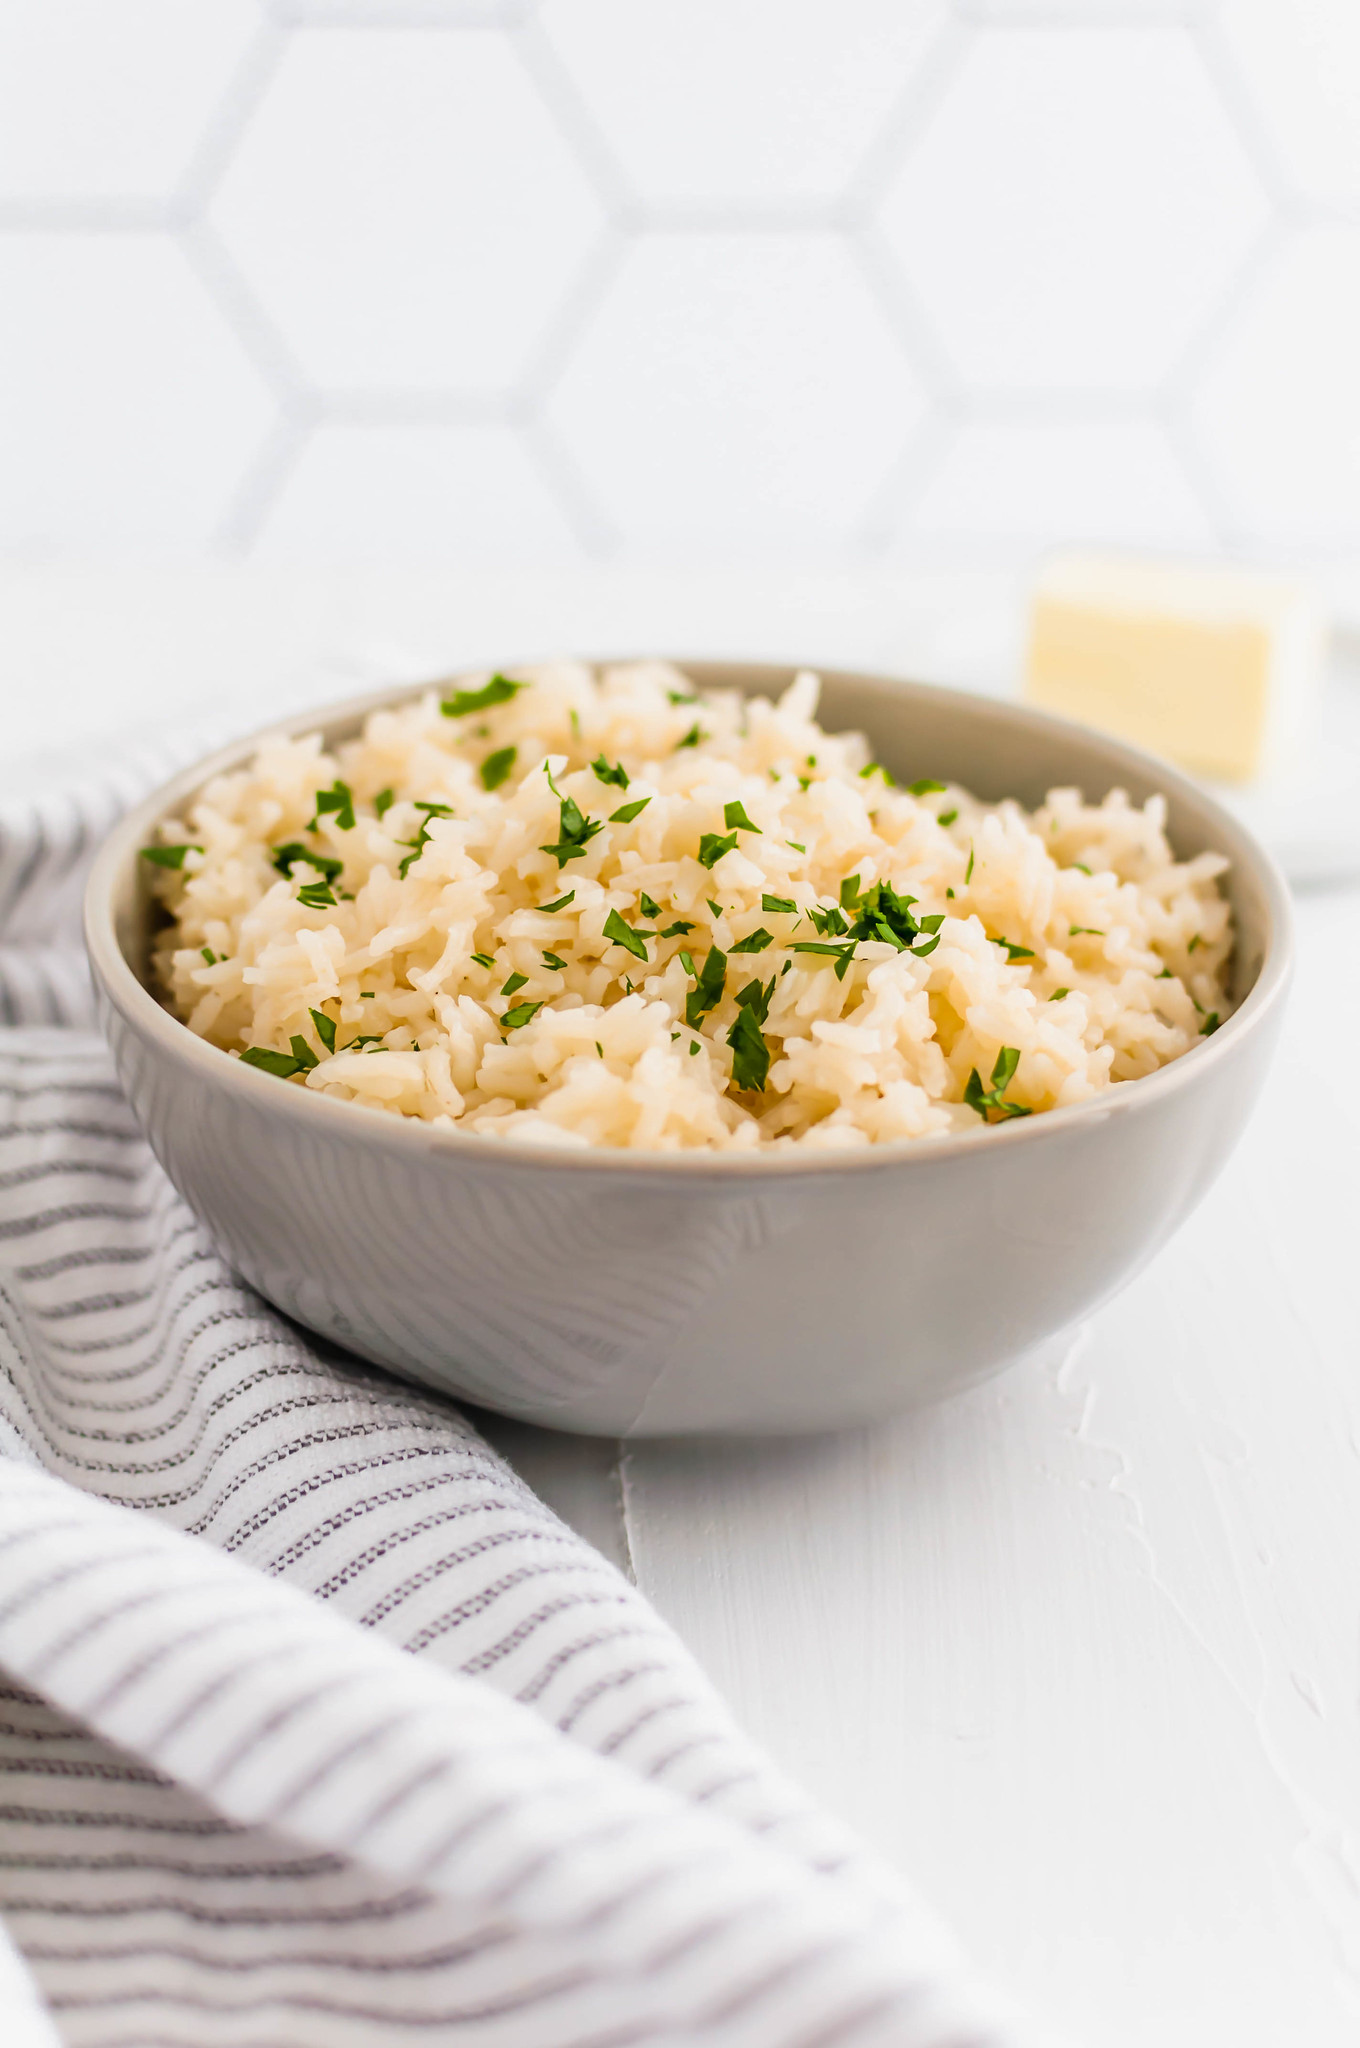 Get ready for the best rice of your life. This Butter Rice is packed with rich, buttery flavor. Chicken stock adds another flavor dimension.